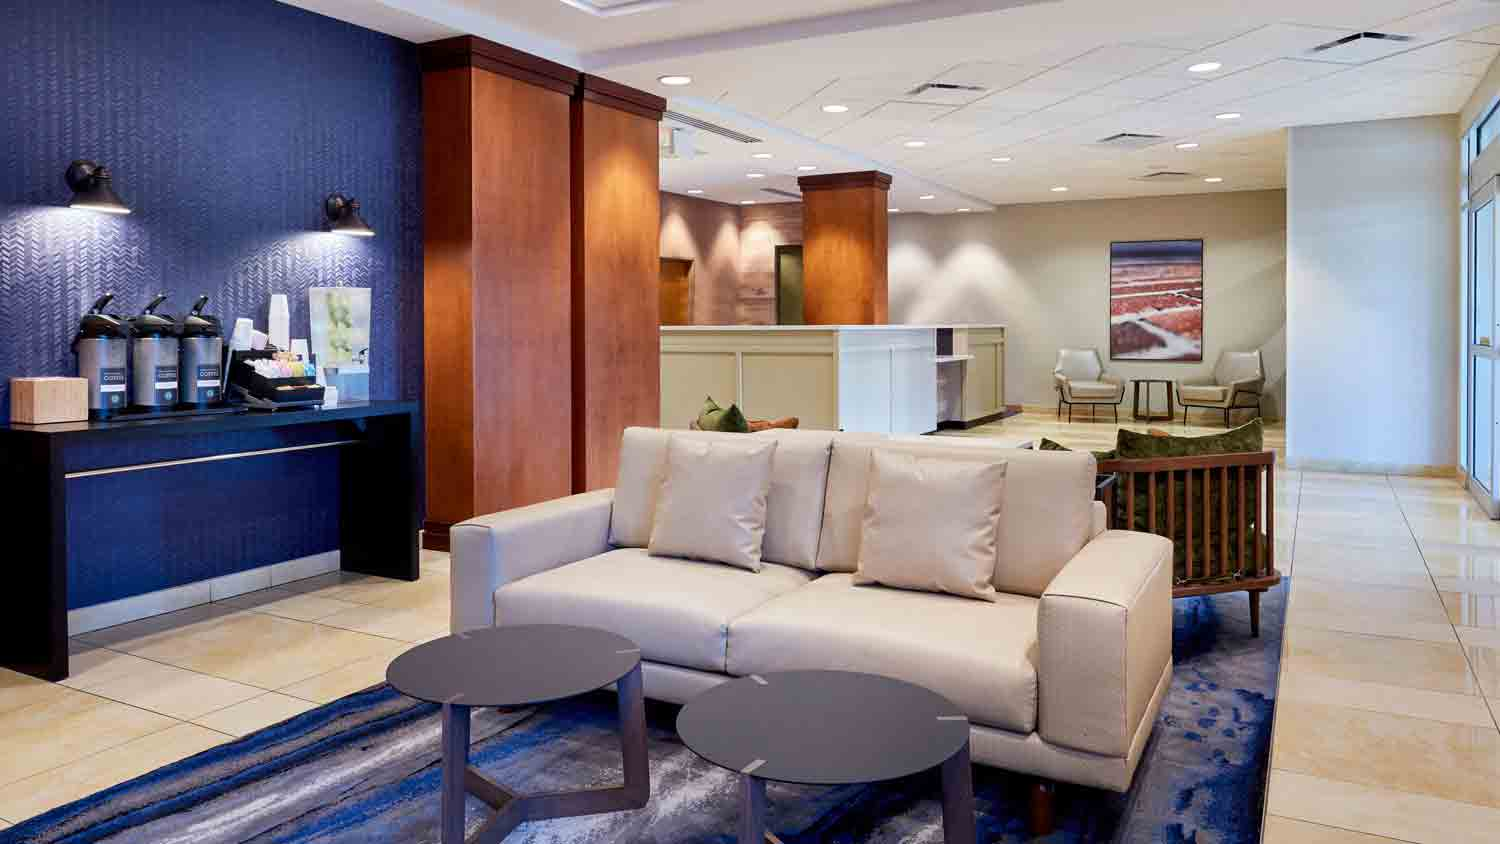 Fairfield Inn & Suites by Marriott Downtown Indianapolis 7